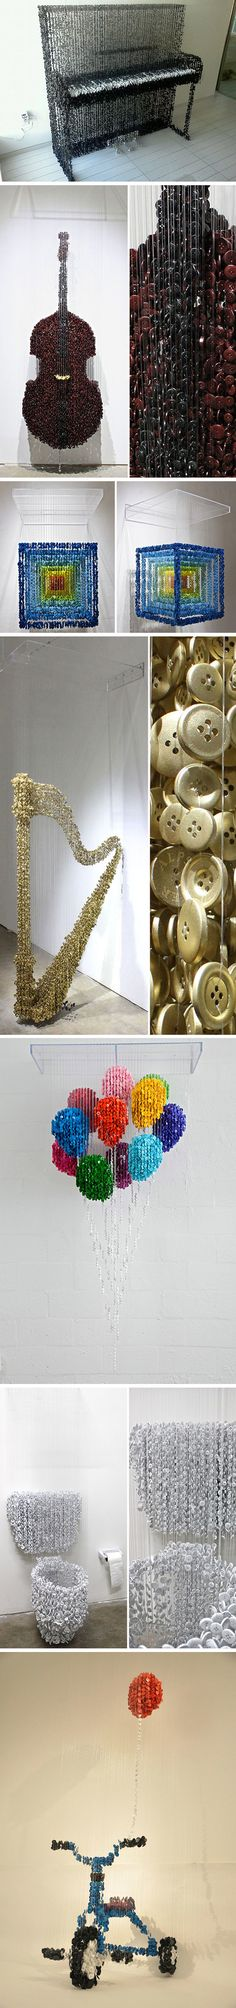 Sculptures-3D-Augusto-Esquivel-2. These sculptures made from hanging buttons are very cool. But, I would NOT want the job of making them!